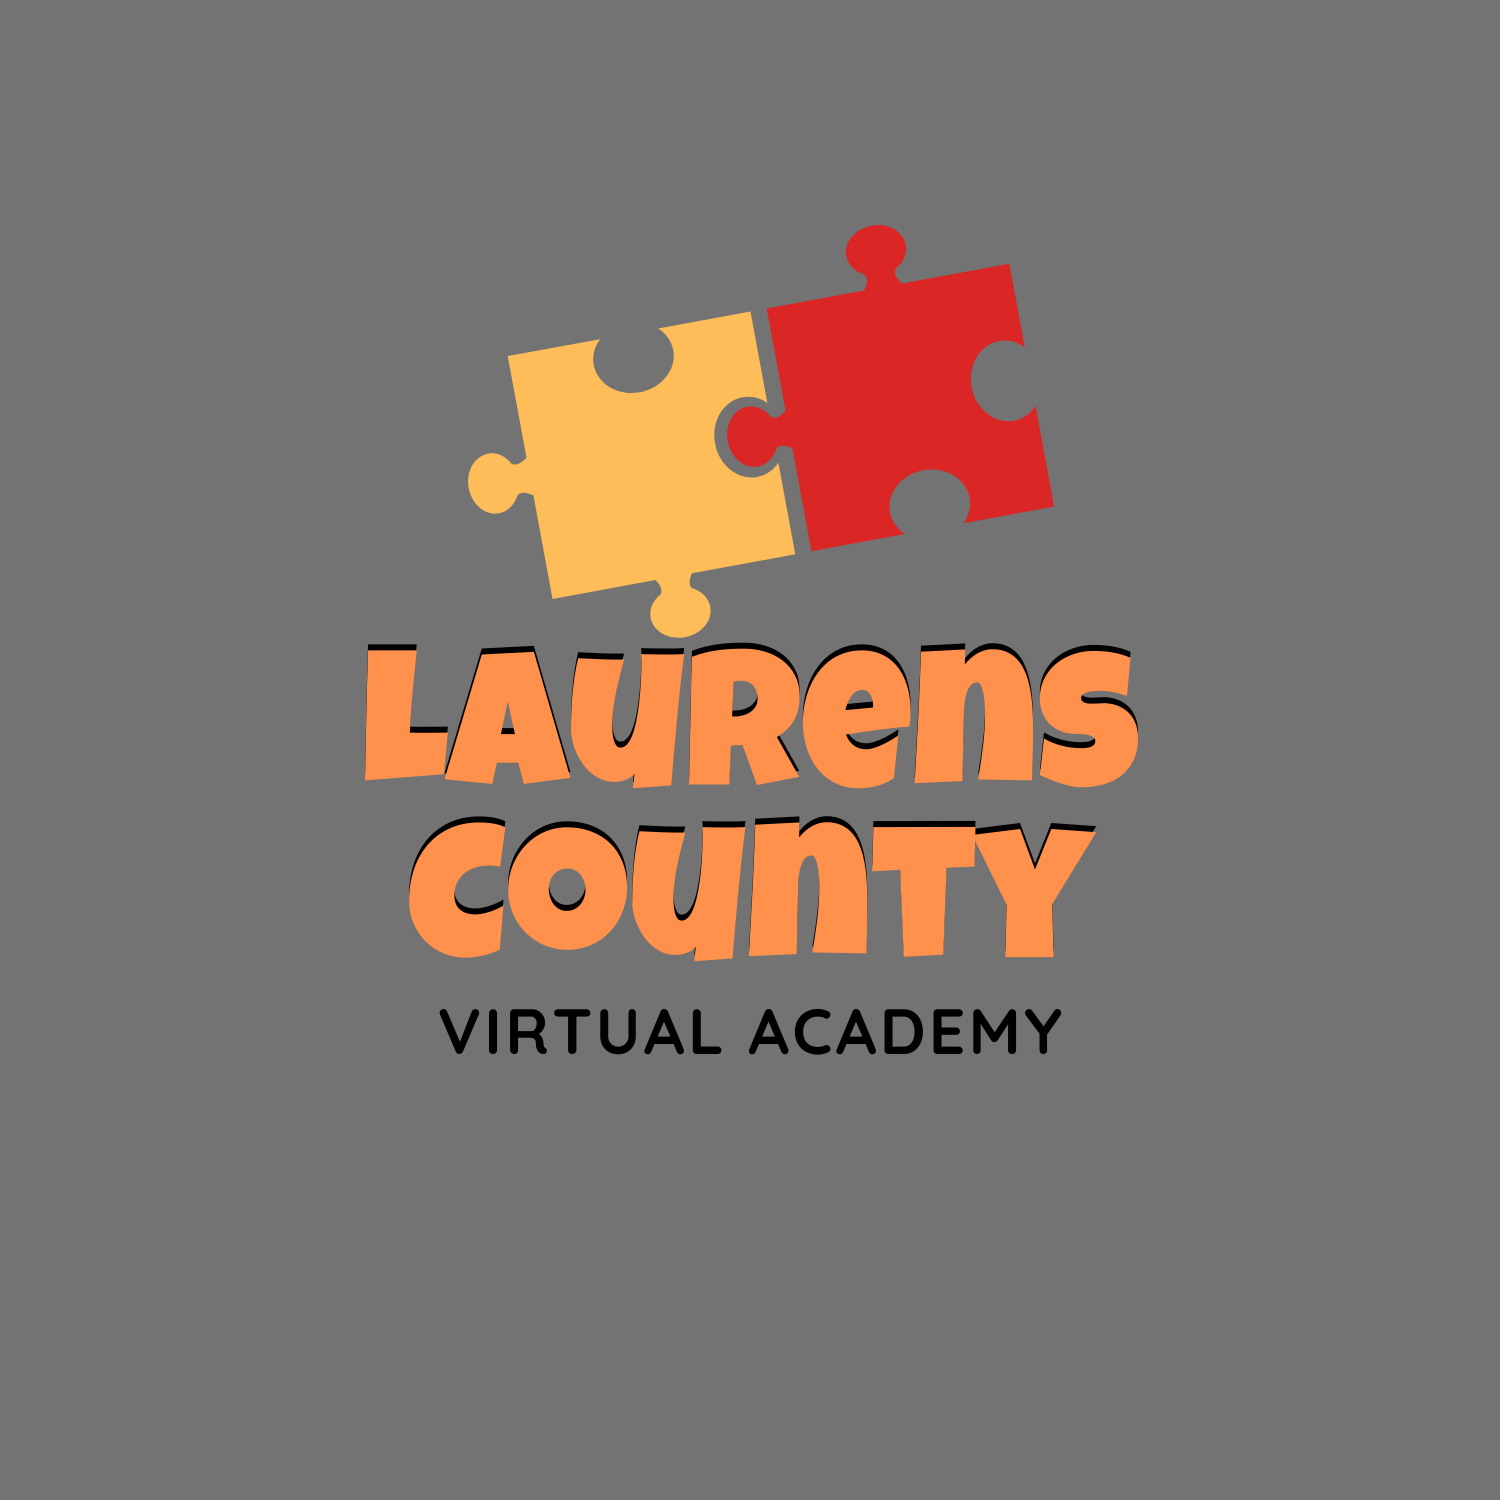 Laurens County Virtual Academy